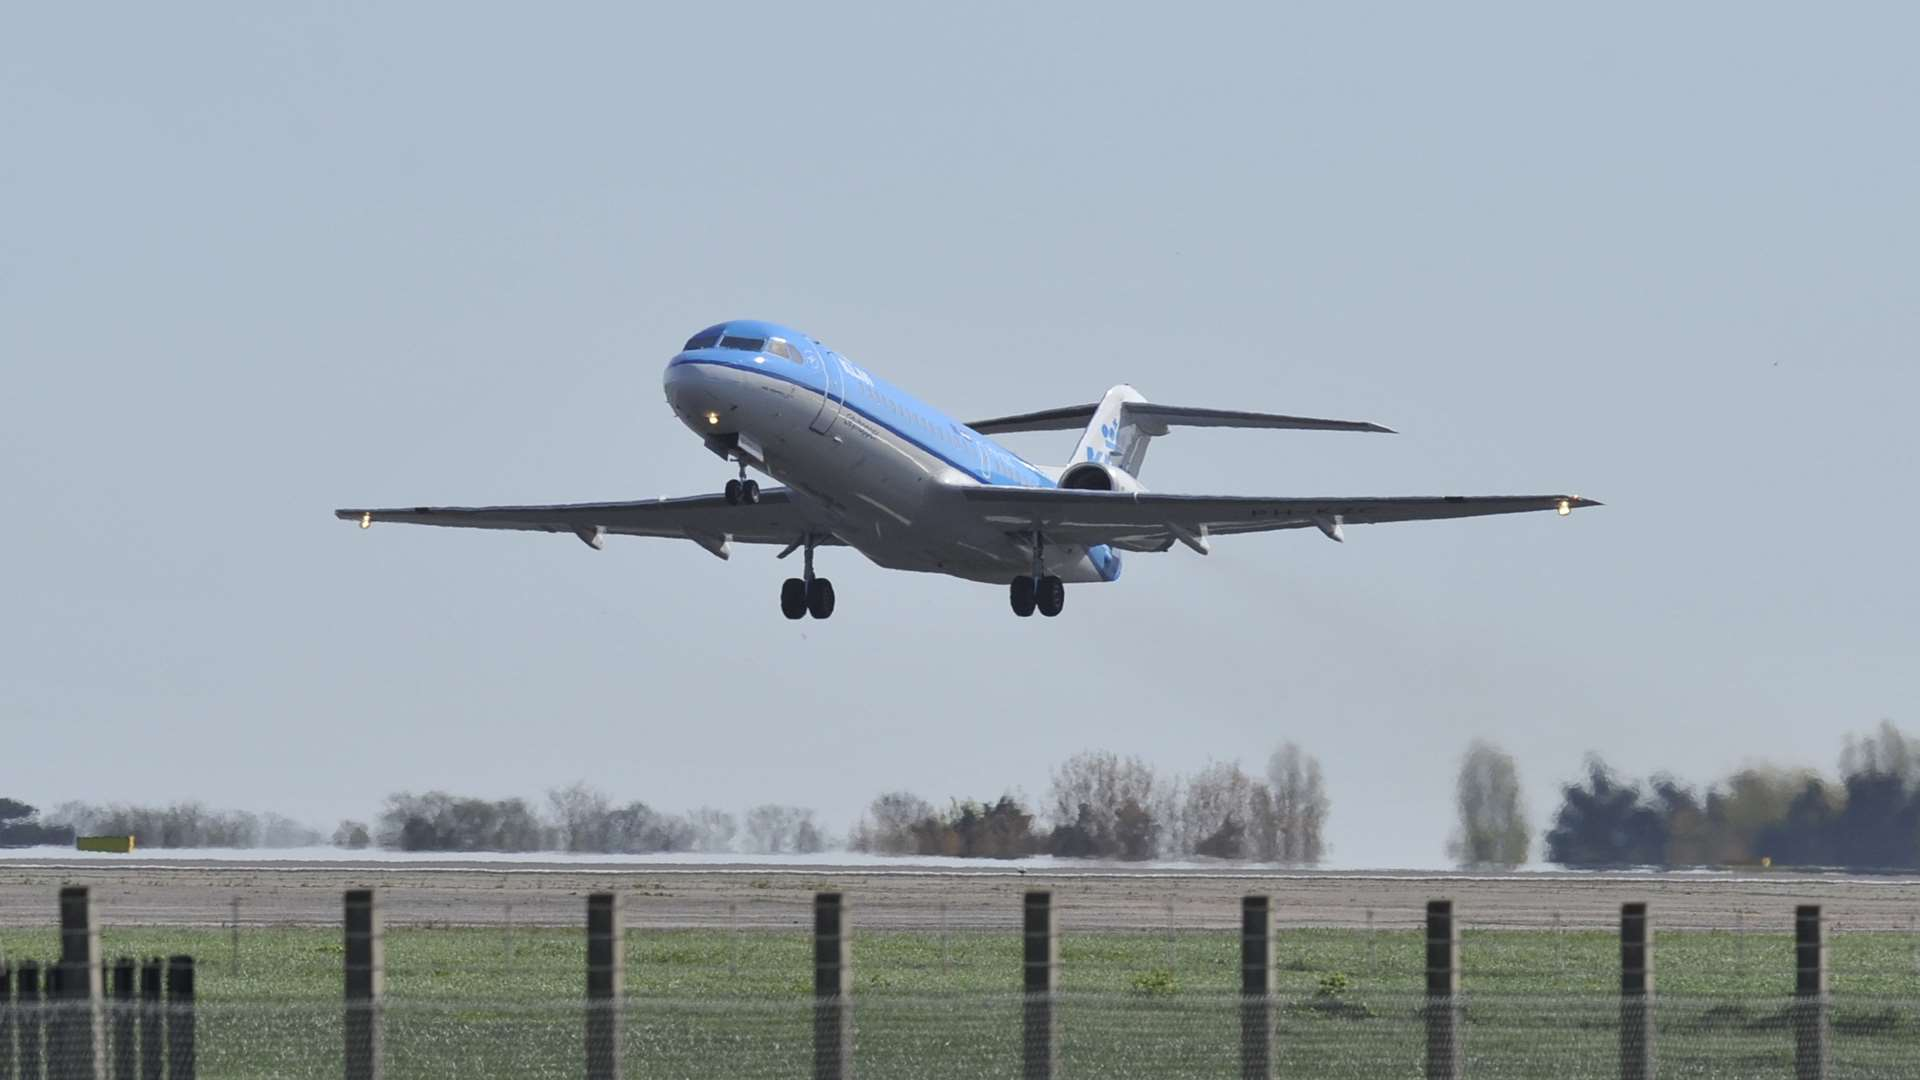 The last KLM passenger flight leaving Manston airport in 2014. Picture: Tony Flashman